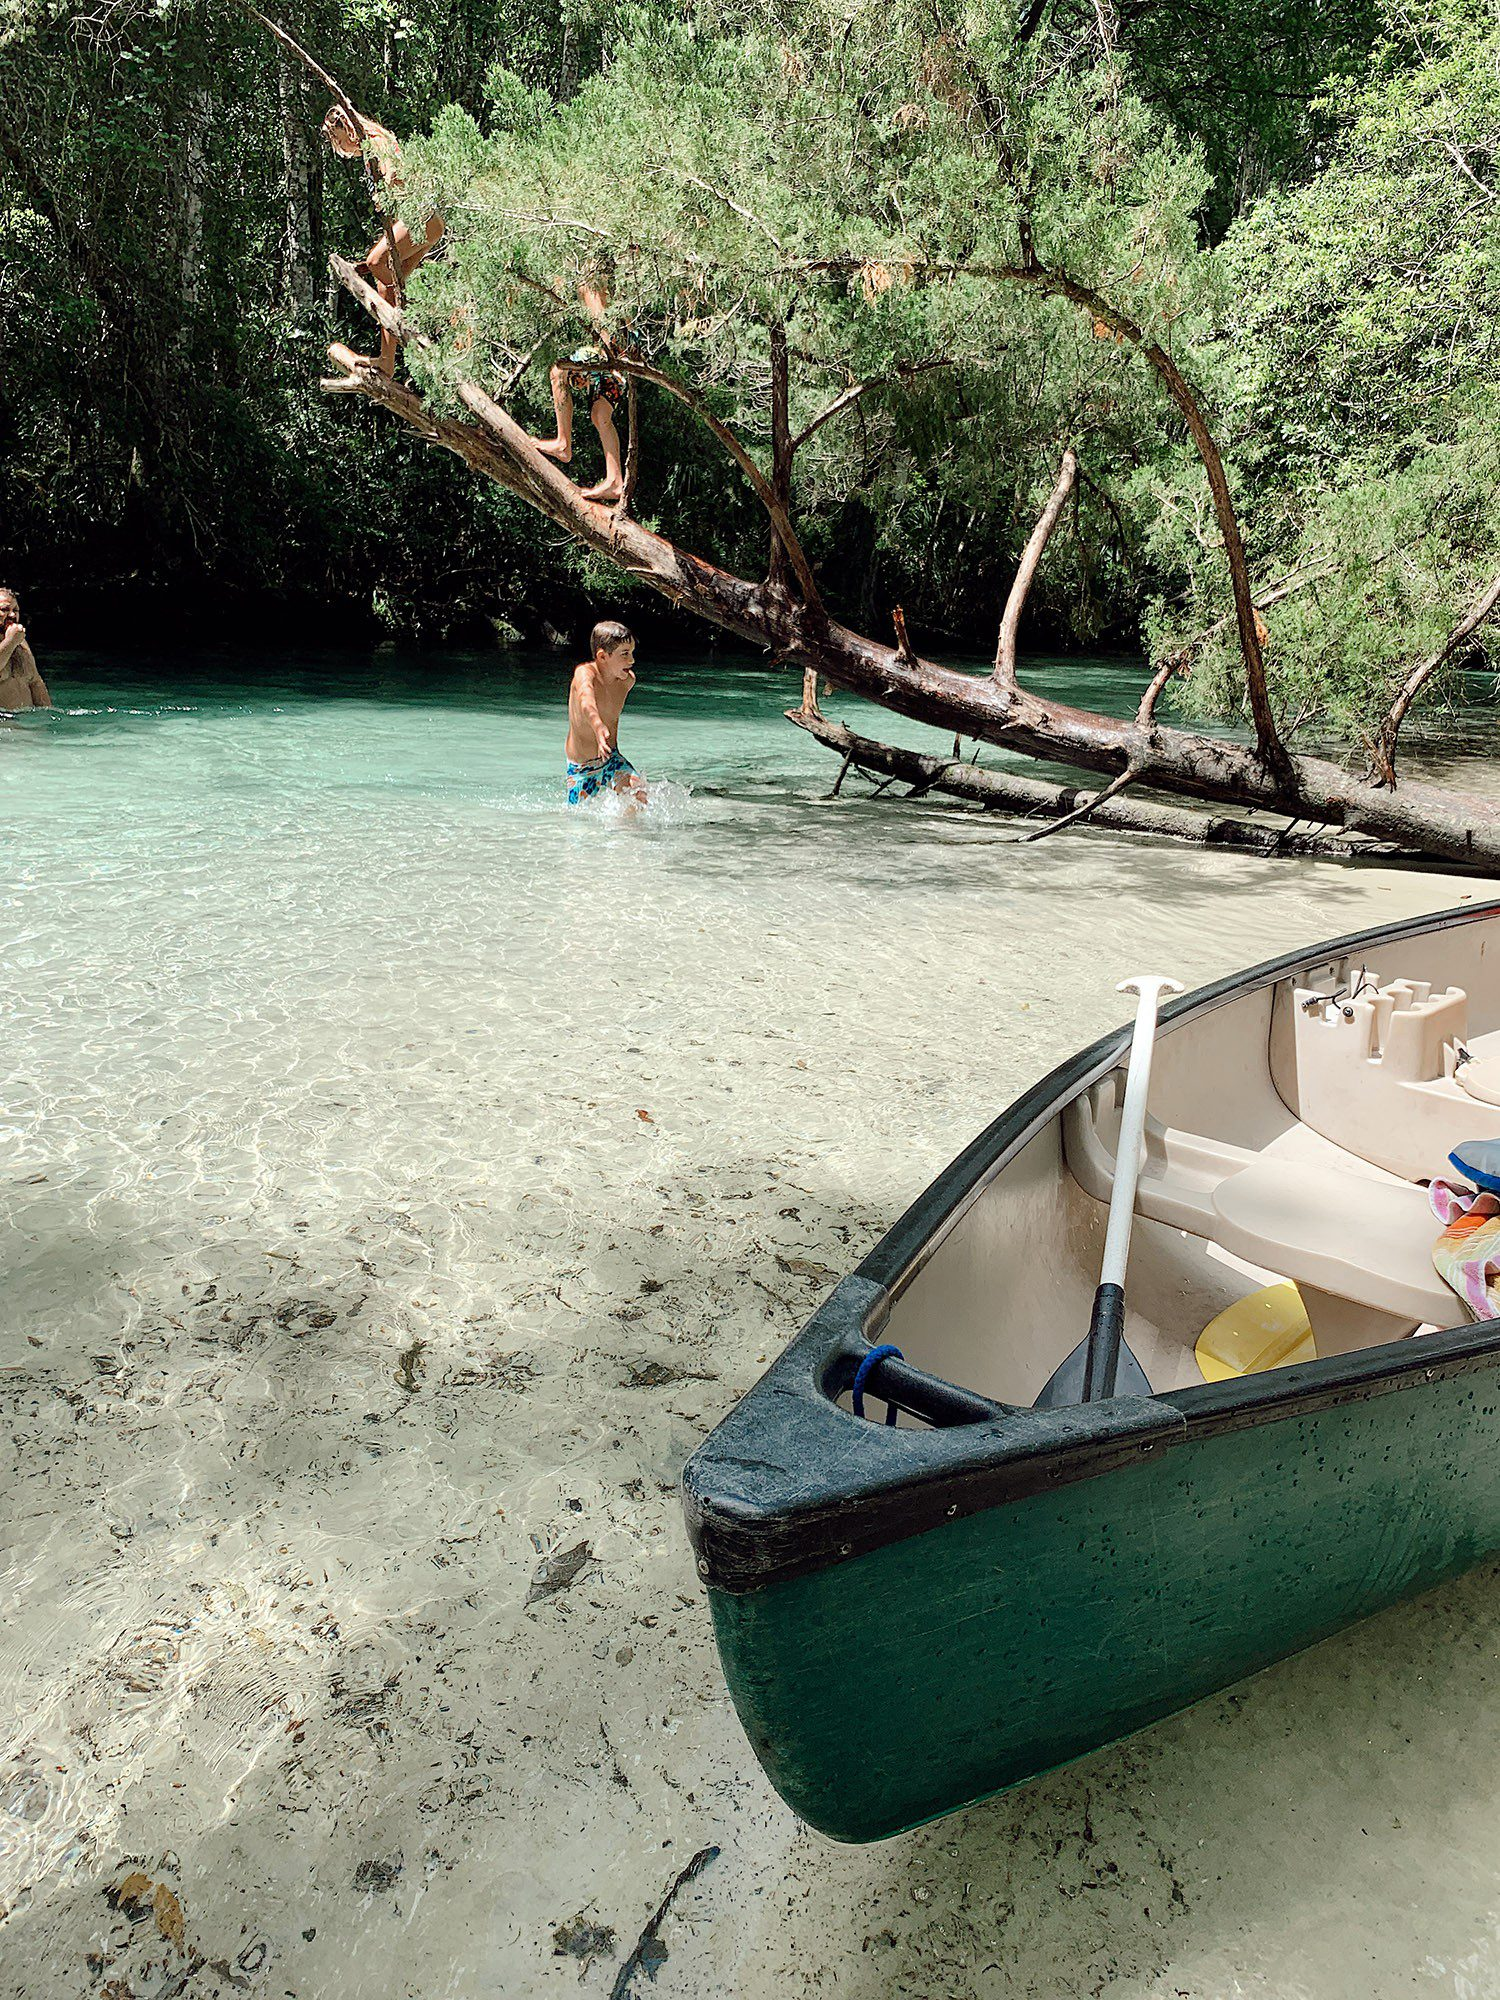 Tips for an Amazing Weeki Wachee Kayaking Florida Staycation. Visit Florida Travel ideas from top lifestyle blogger Tabitha Blue of Fresh Mommy Blog.   Weeki Wachee Kayaking by popular Florida blog, Fresh Mommy Blog: image of a group of kids climbing on a tree and playing in the water.